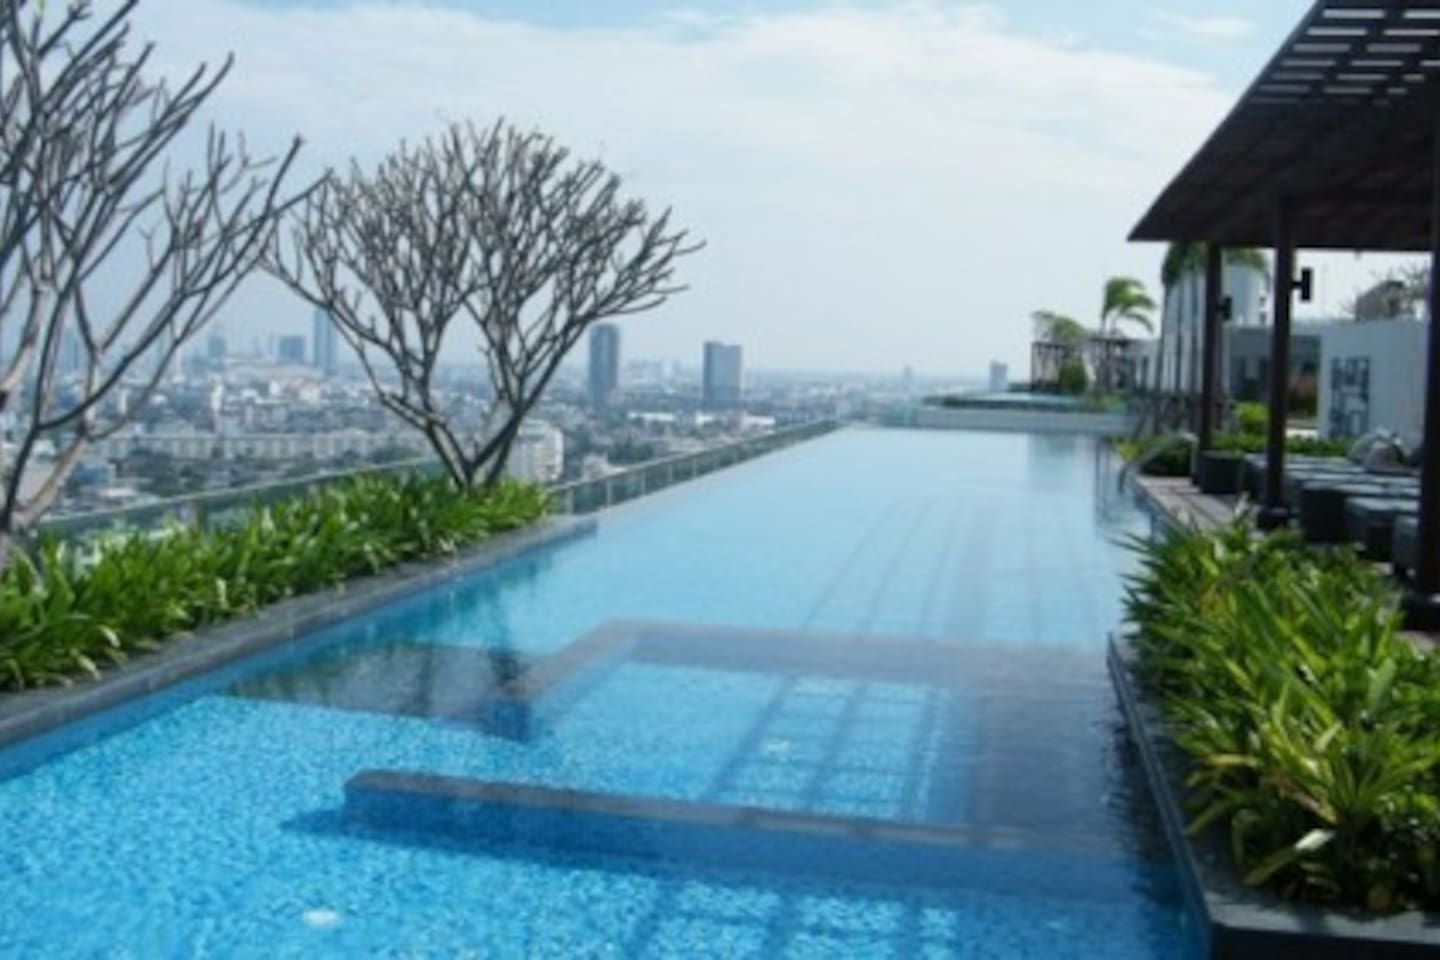 There is twin pool at the rooftop of building 22nd floor with stunning view.